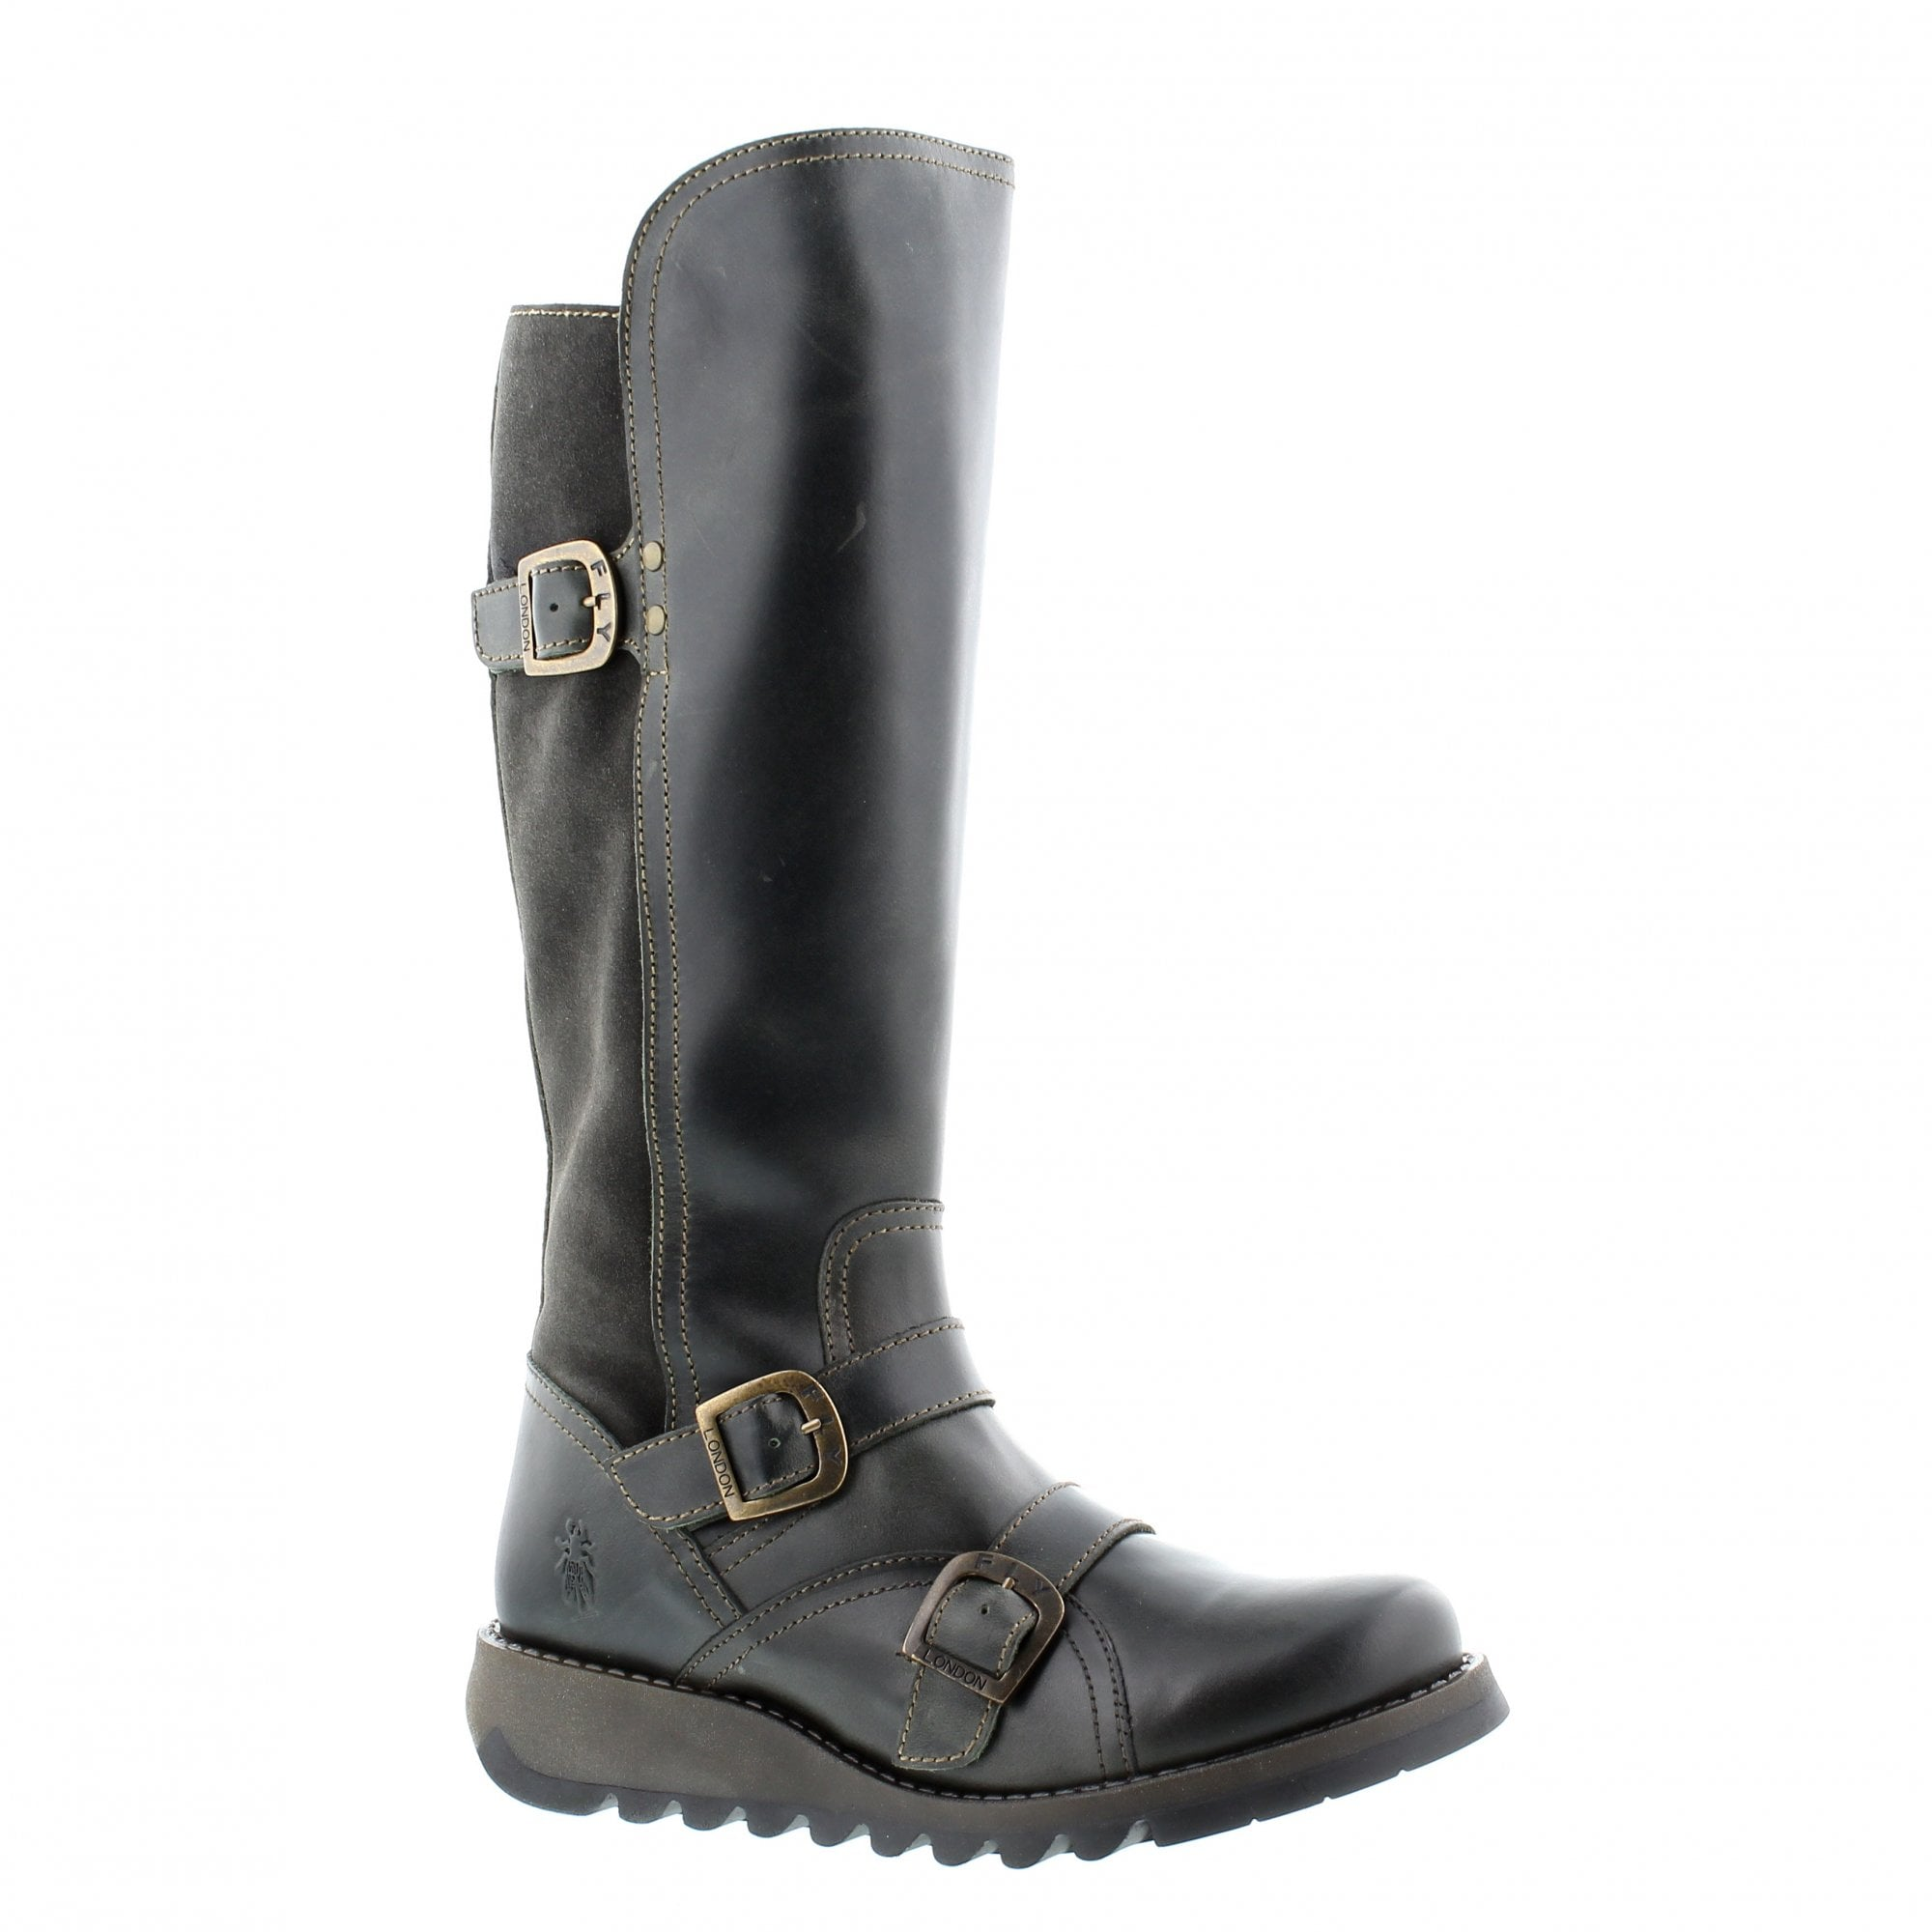 db0ddc6e54b Fly London Suda Knee High Boots Grey Leather Rogerson Shoes